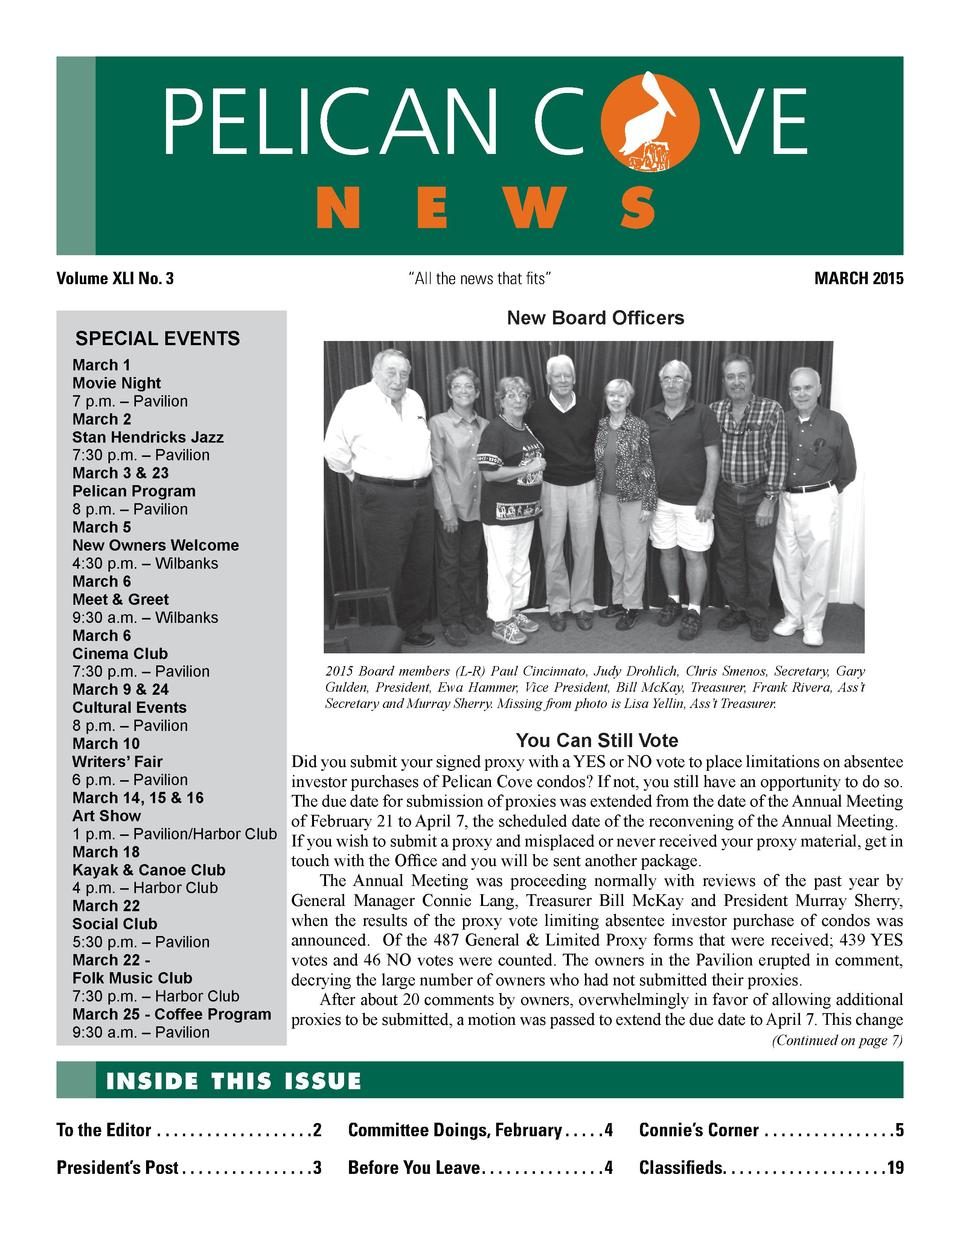 PELICAN C  n e w s  Volume XLI No. 3  MARCH 2015     All the news that fits     New Board Officers  SPECIAL EVENTS March 1...